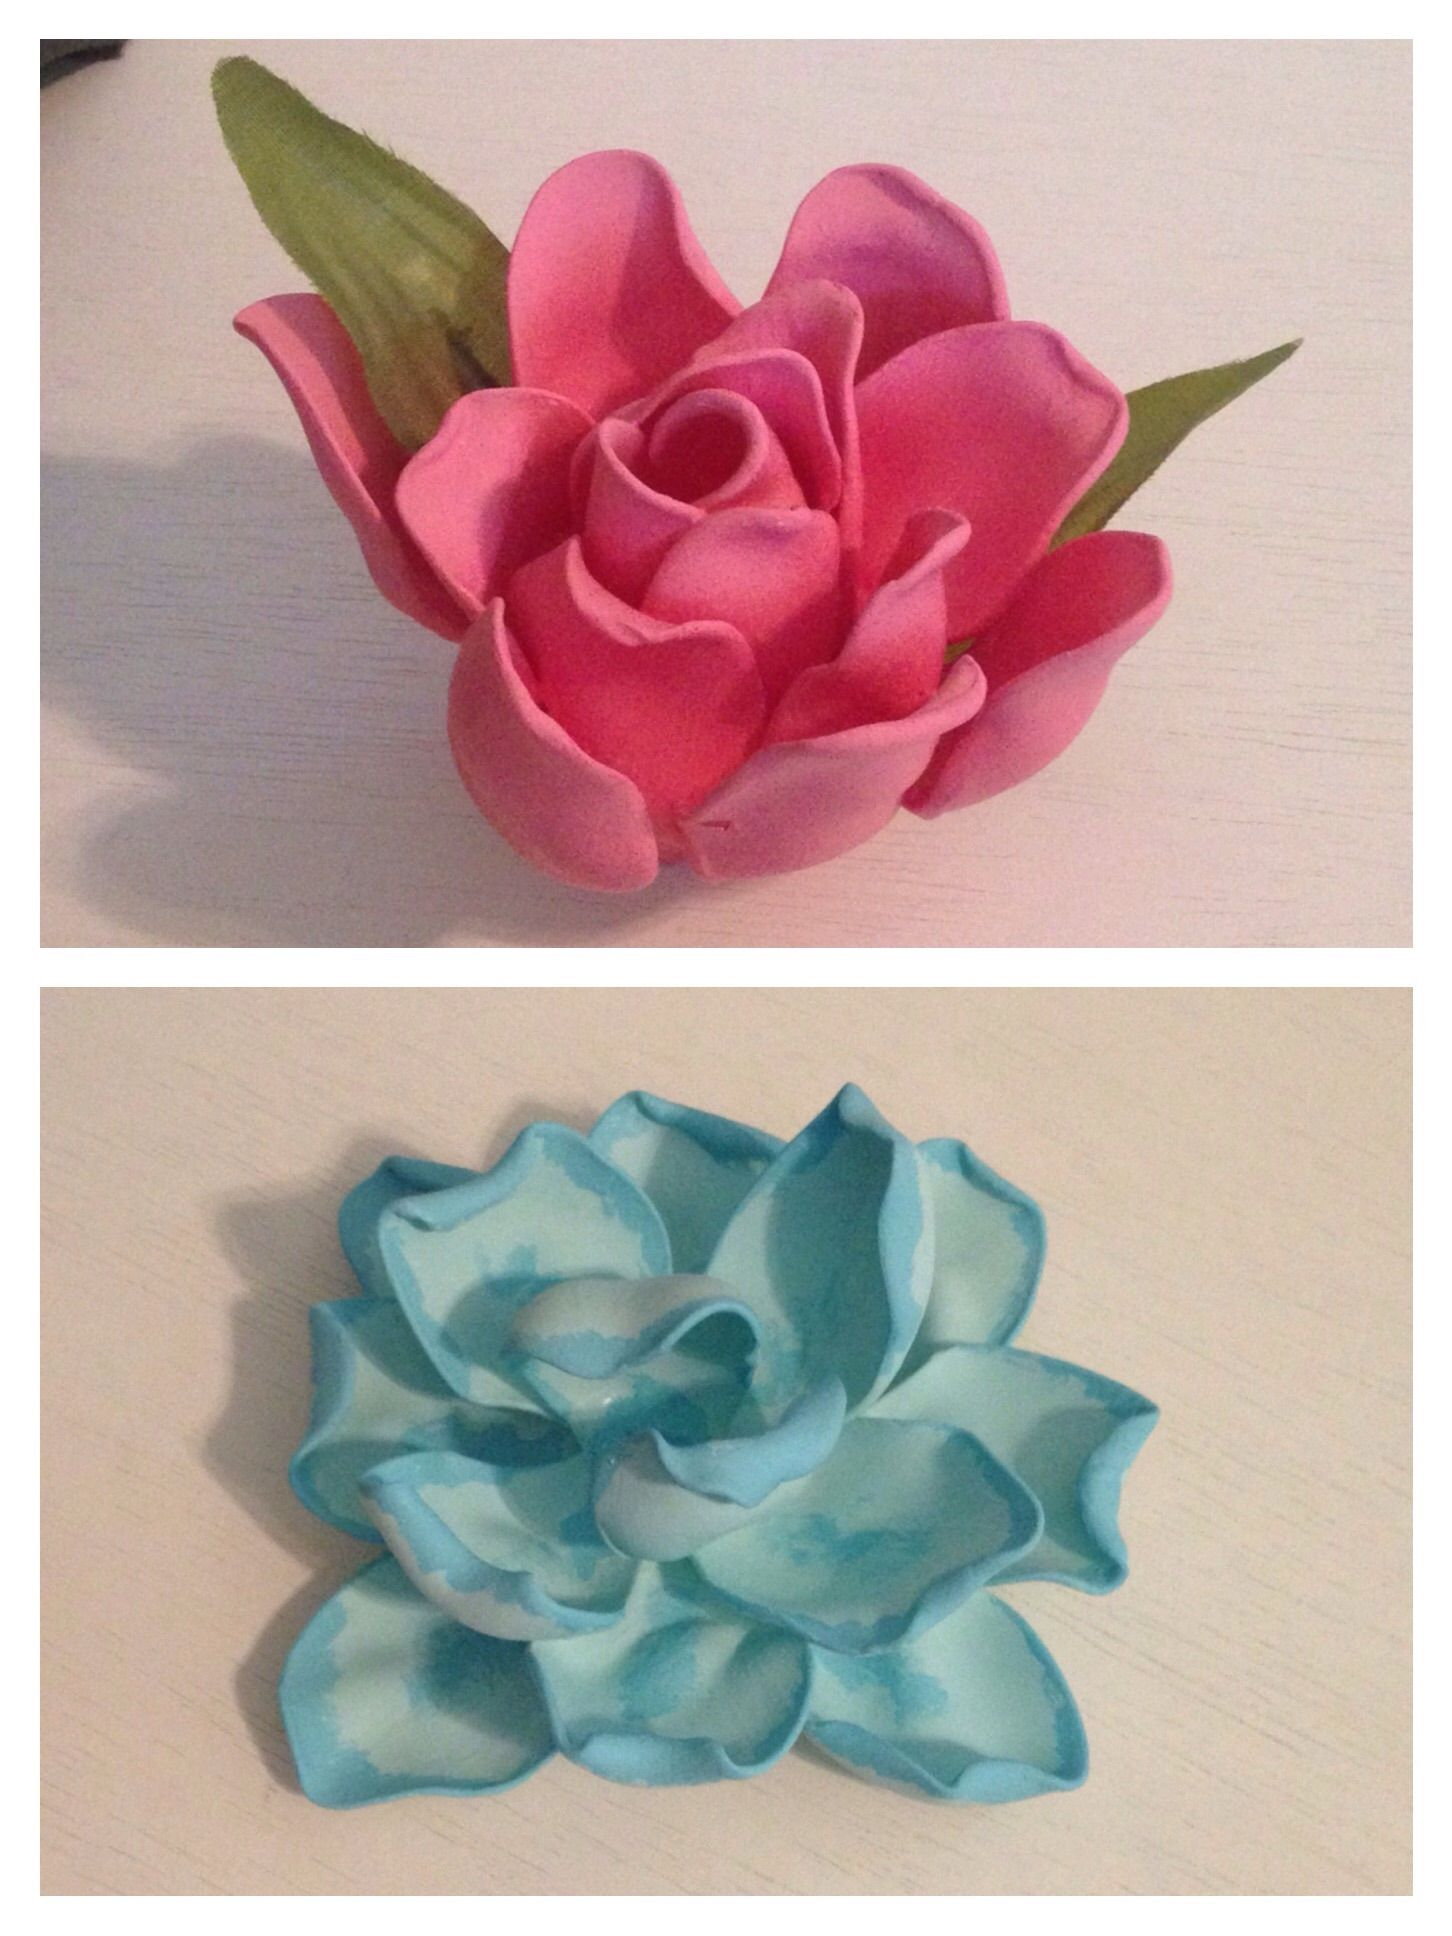 Flowers Made From Plastic Spoons Plastic Spoon Art Plastic Spoon Crafts Flower Diy Crafts